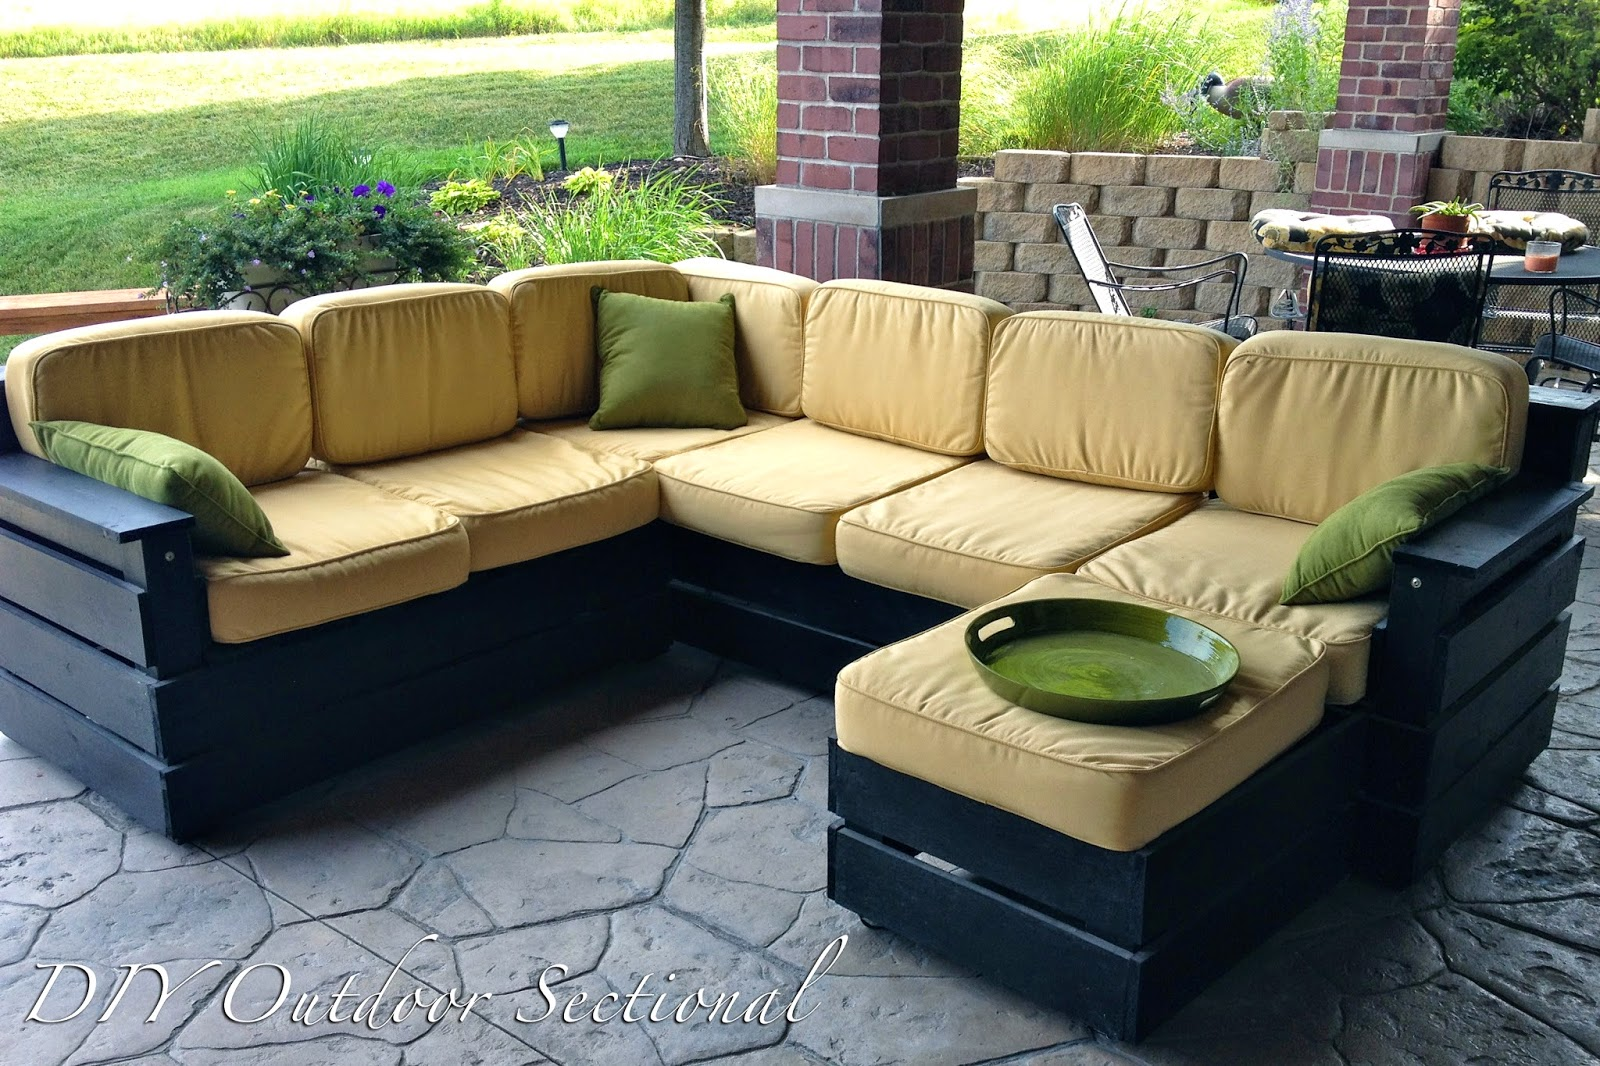 Diy why spend more diy outdoor sectional for Outdoor furniture images